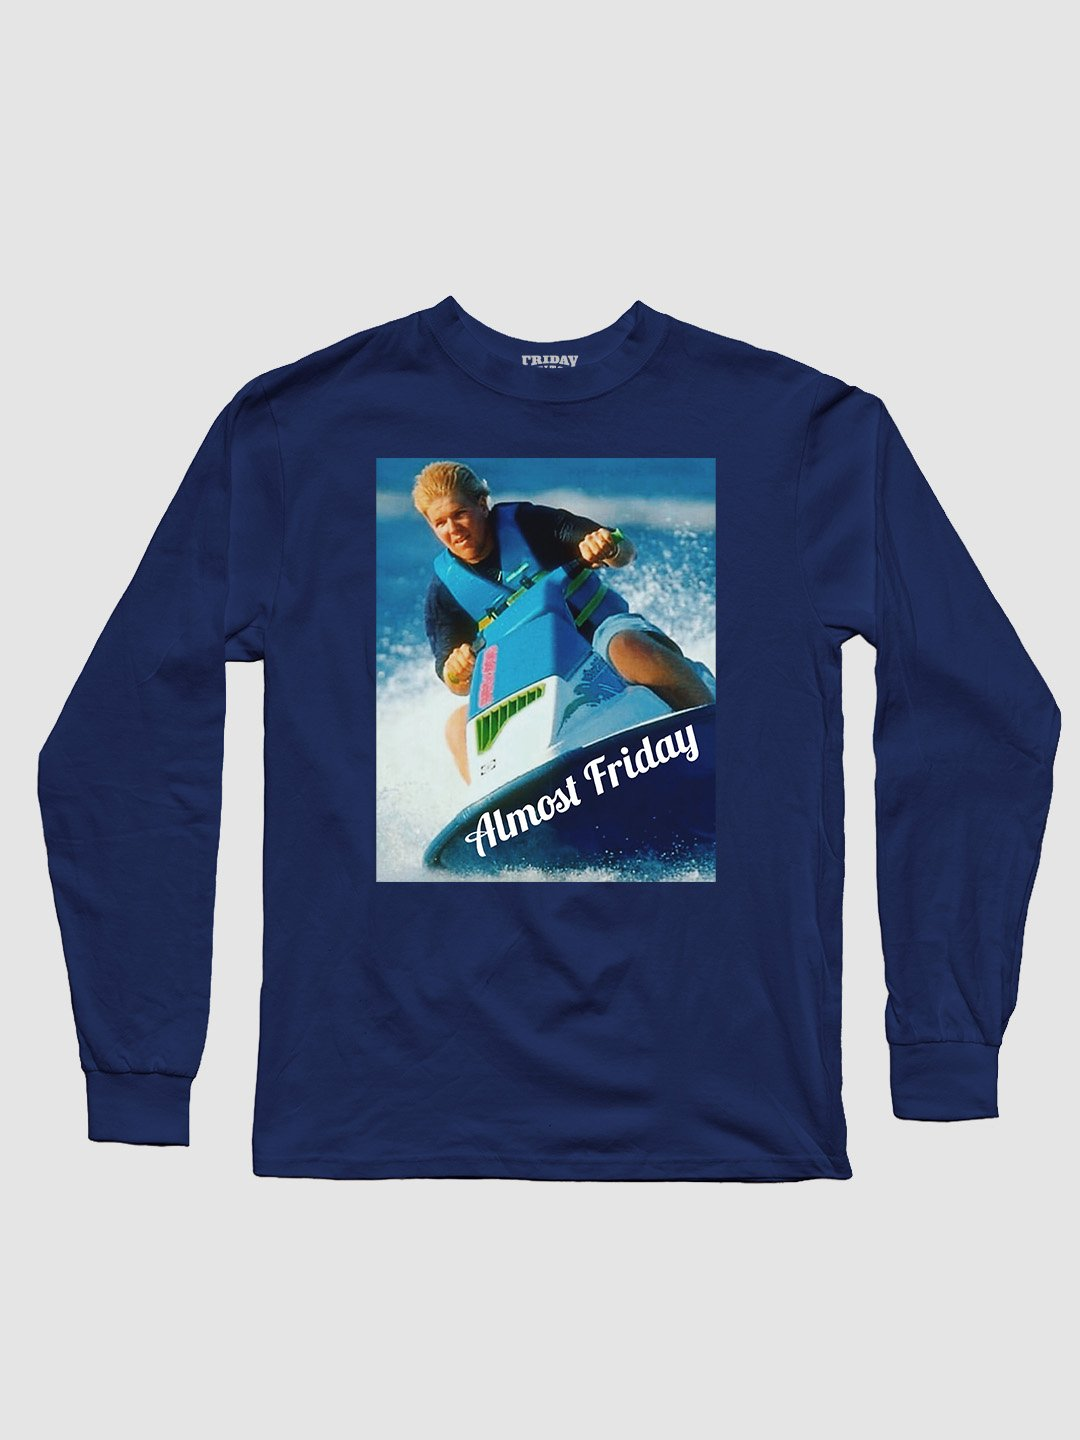 Almost Friday Jet Ski Long Sleeve